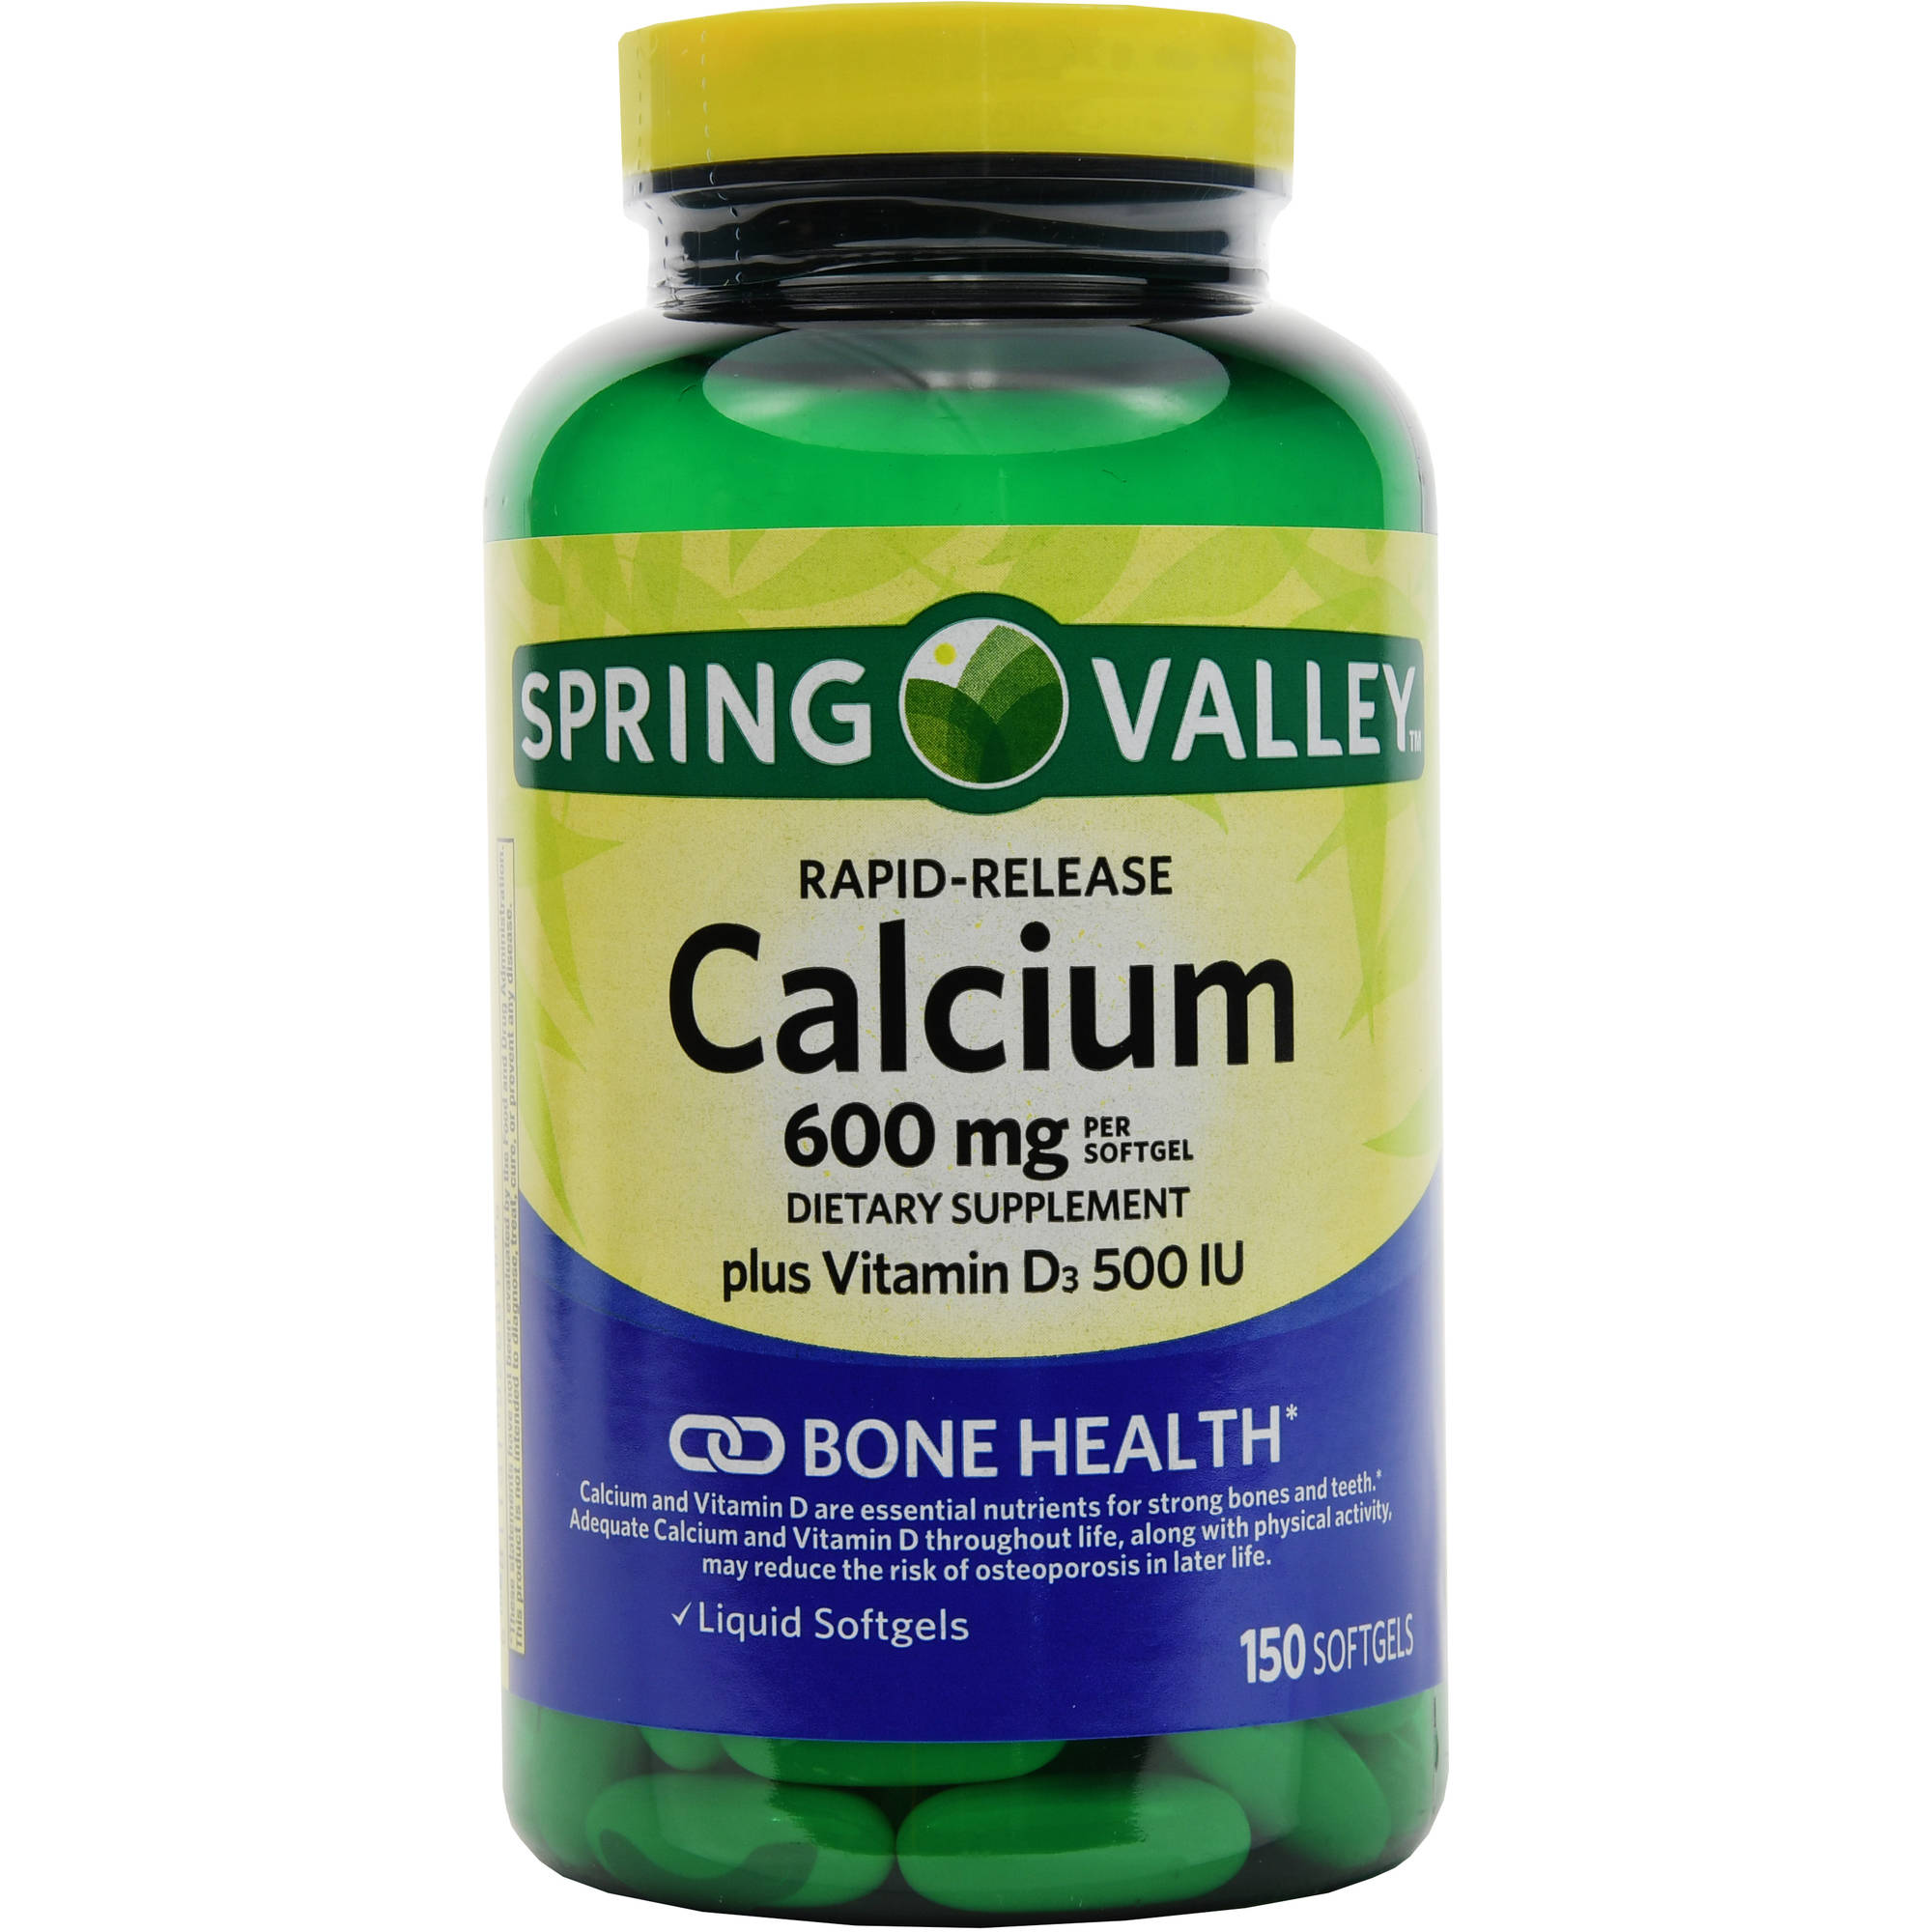 Spring Valley Calcium plus Vitamin D3 Dietary Supplement Softgels, 600 mg, 150 ct